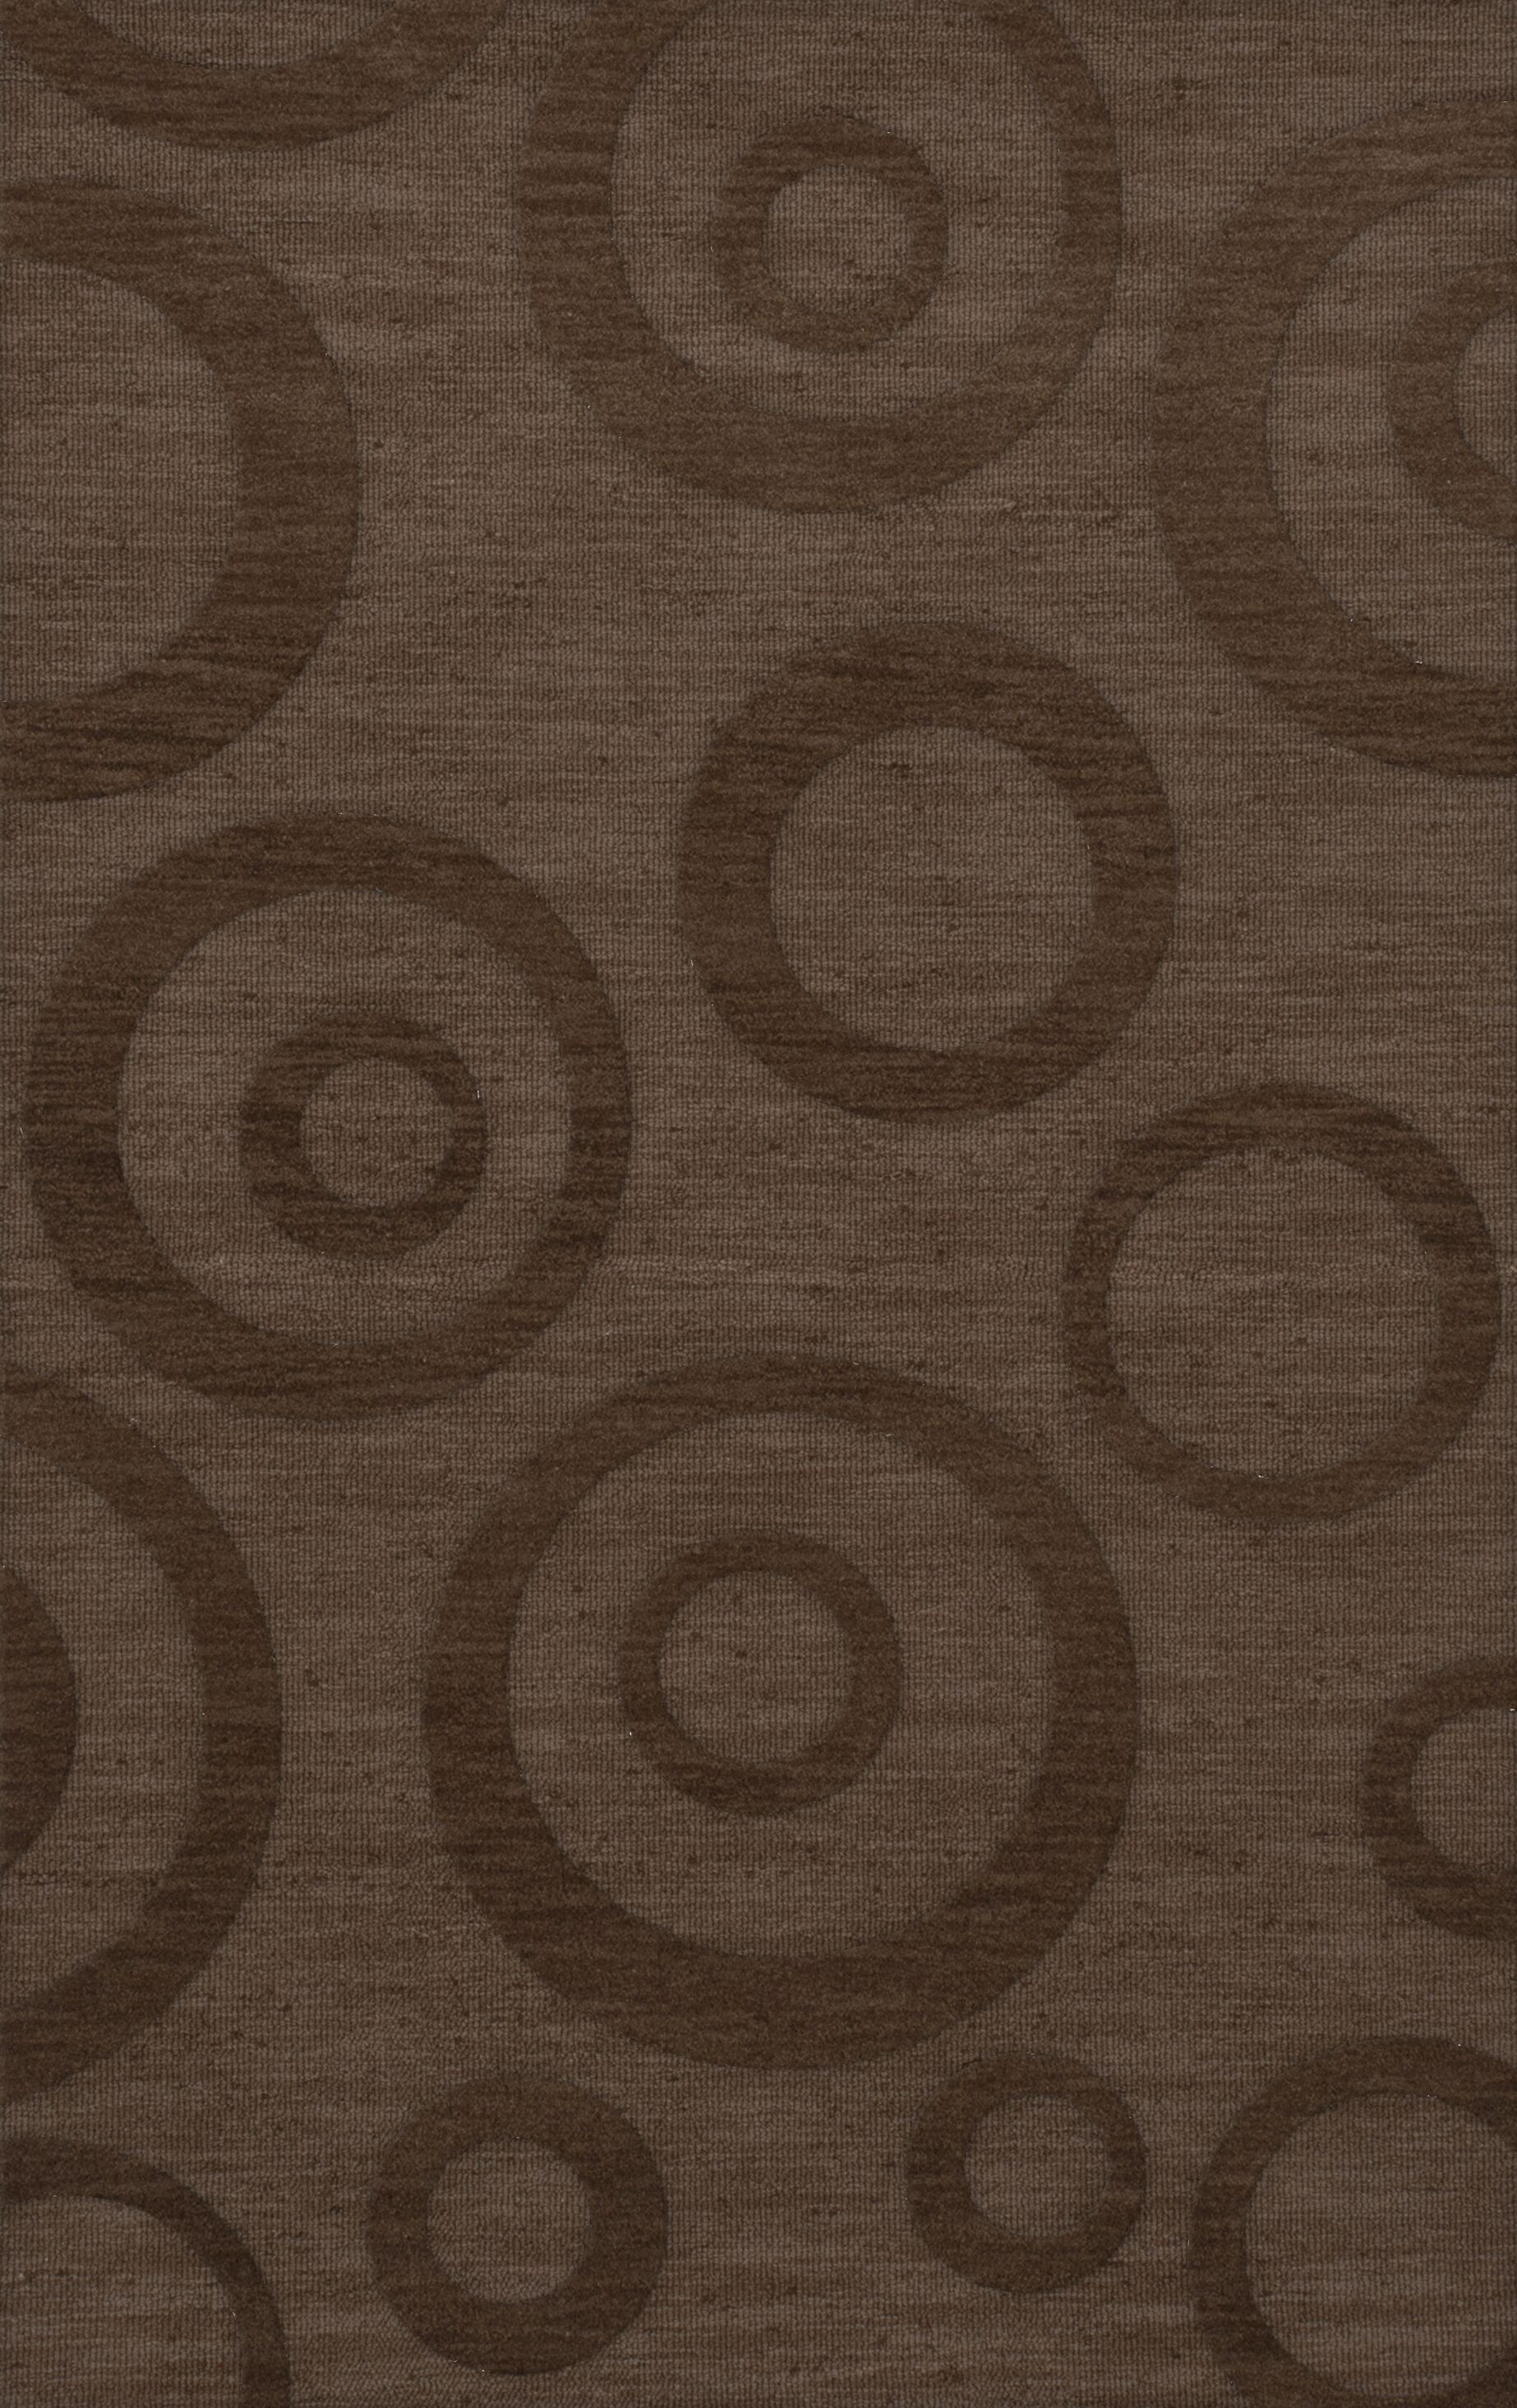 Dover Tufted Wool Mocha Area Rug Rug Size: Rectangle 12' x 18'